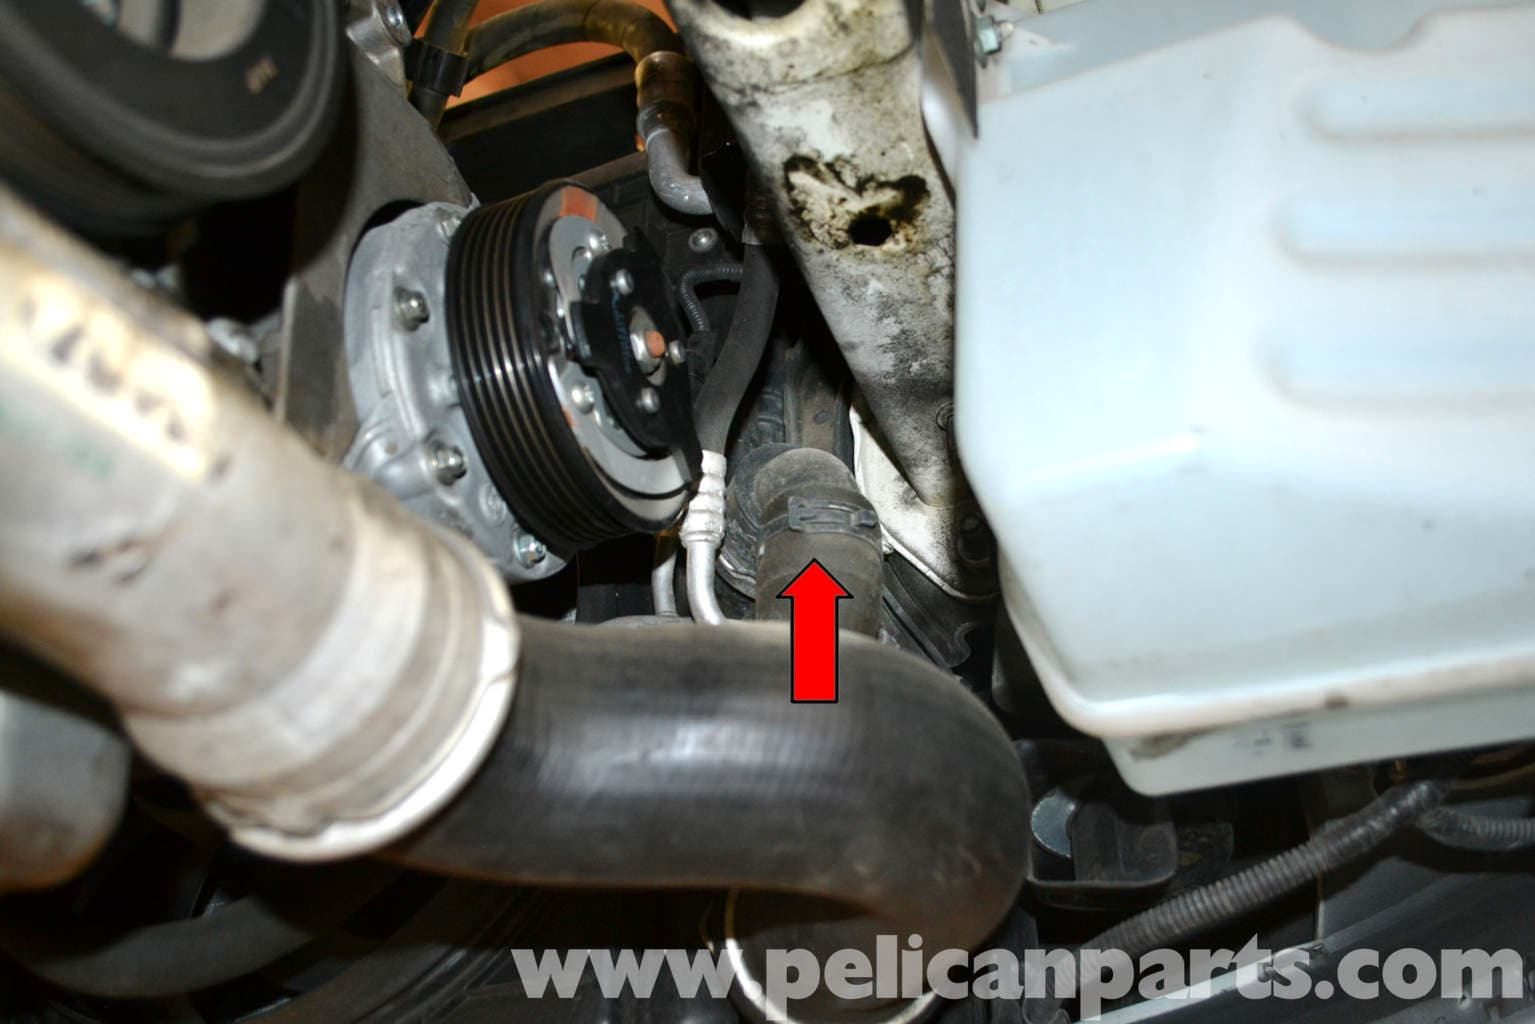 Volkswagen Golf GTI Mk V Radiator and Coolant Hose Replacement (2006-2009) - Pelican Parts DIY ...